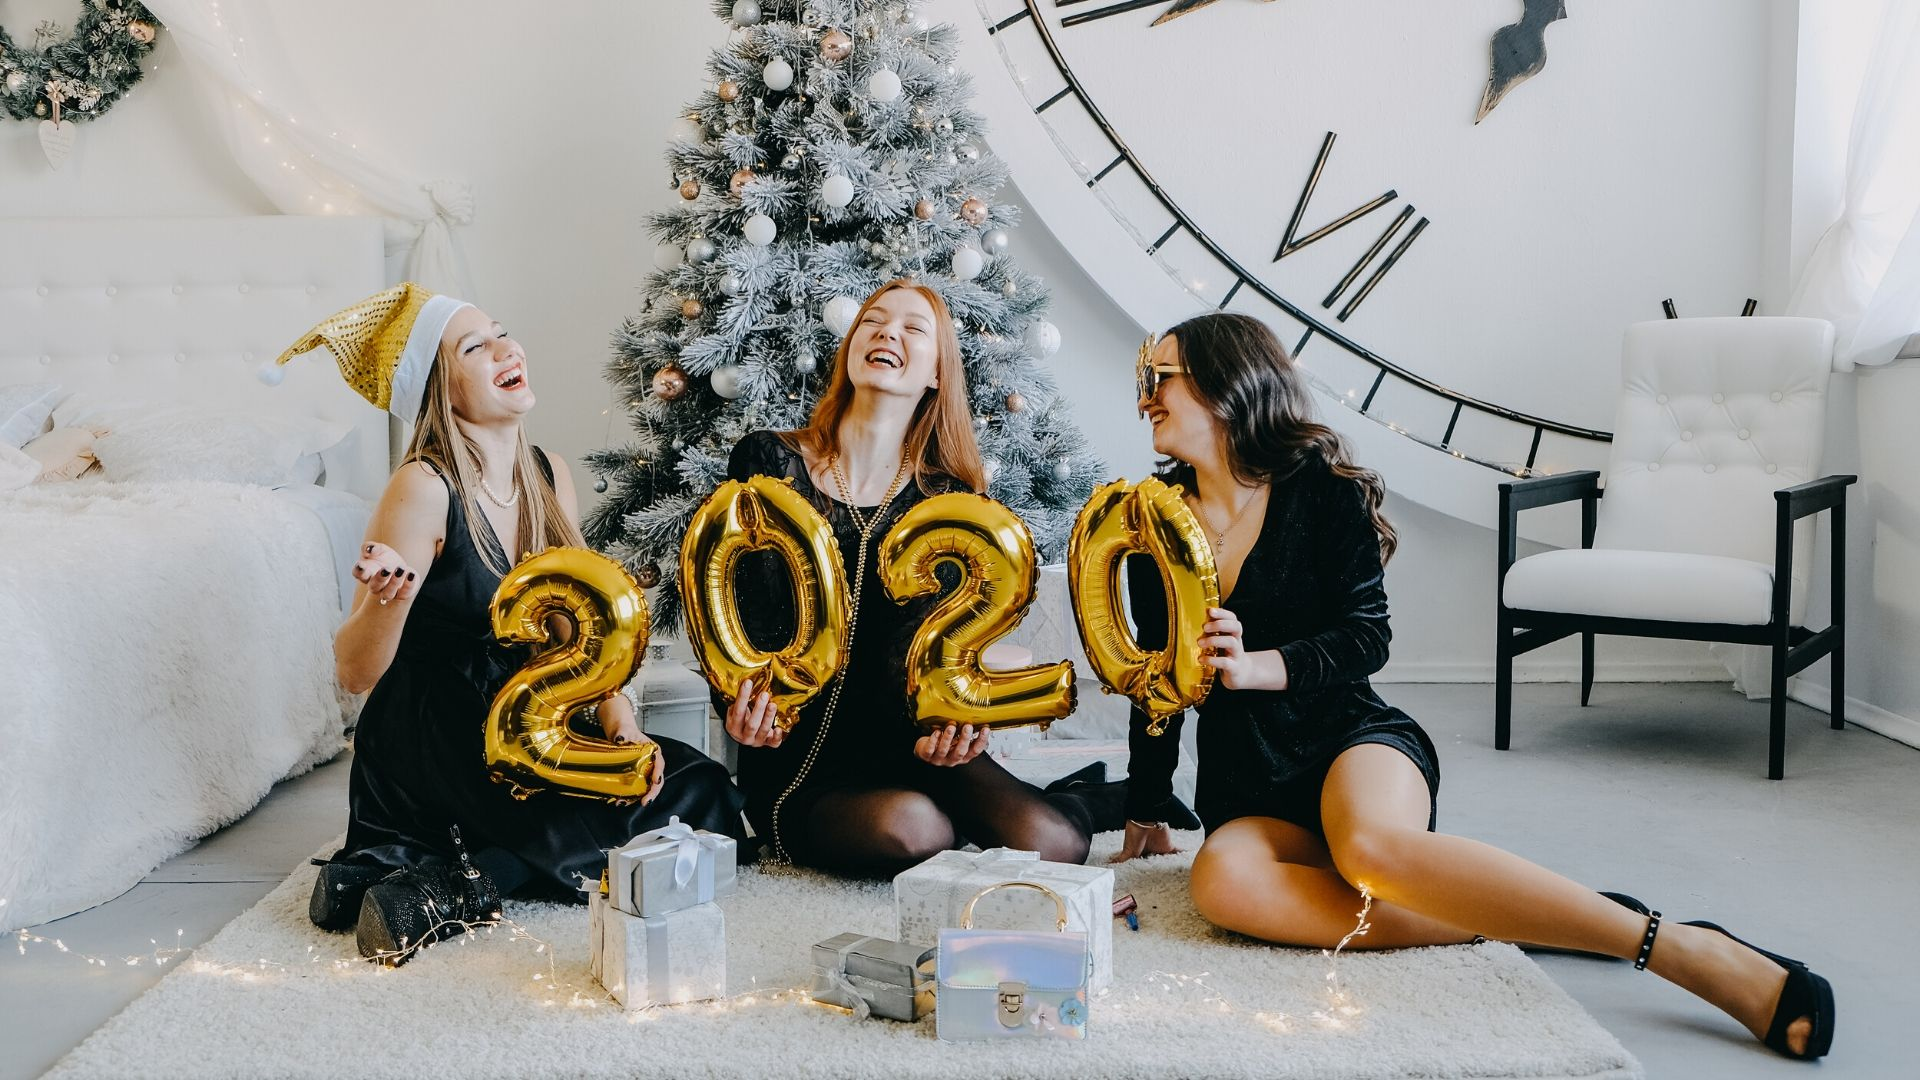 8 Pretty Easy Ways To Save Money In 2020 For Added Financial Wellness